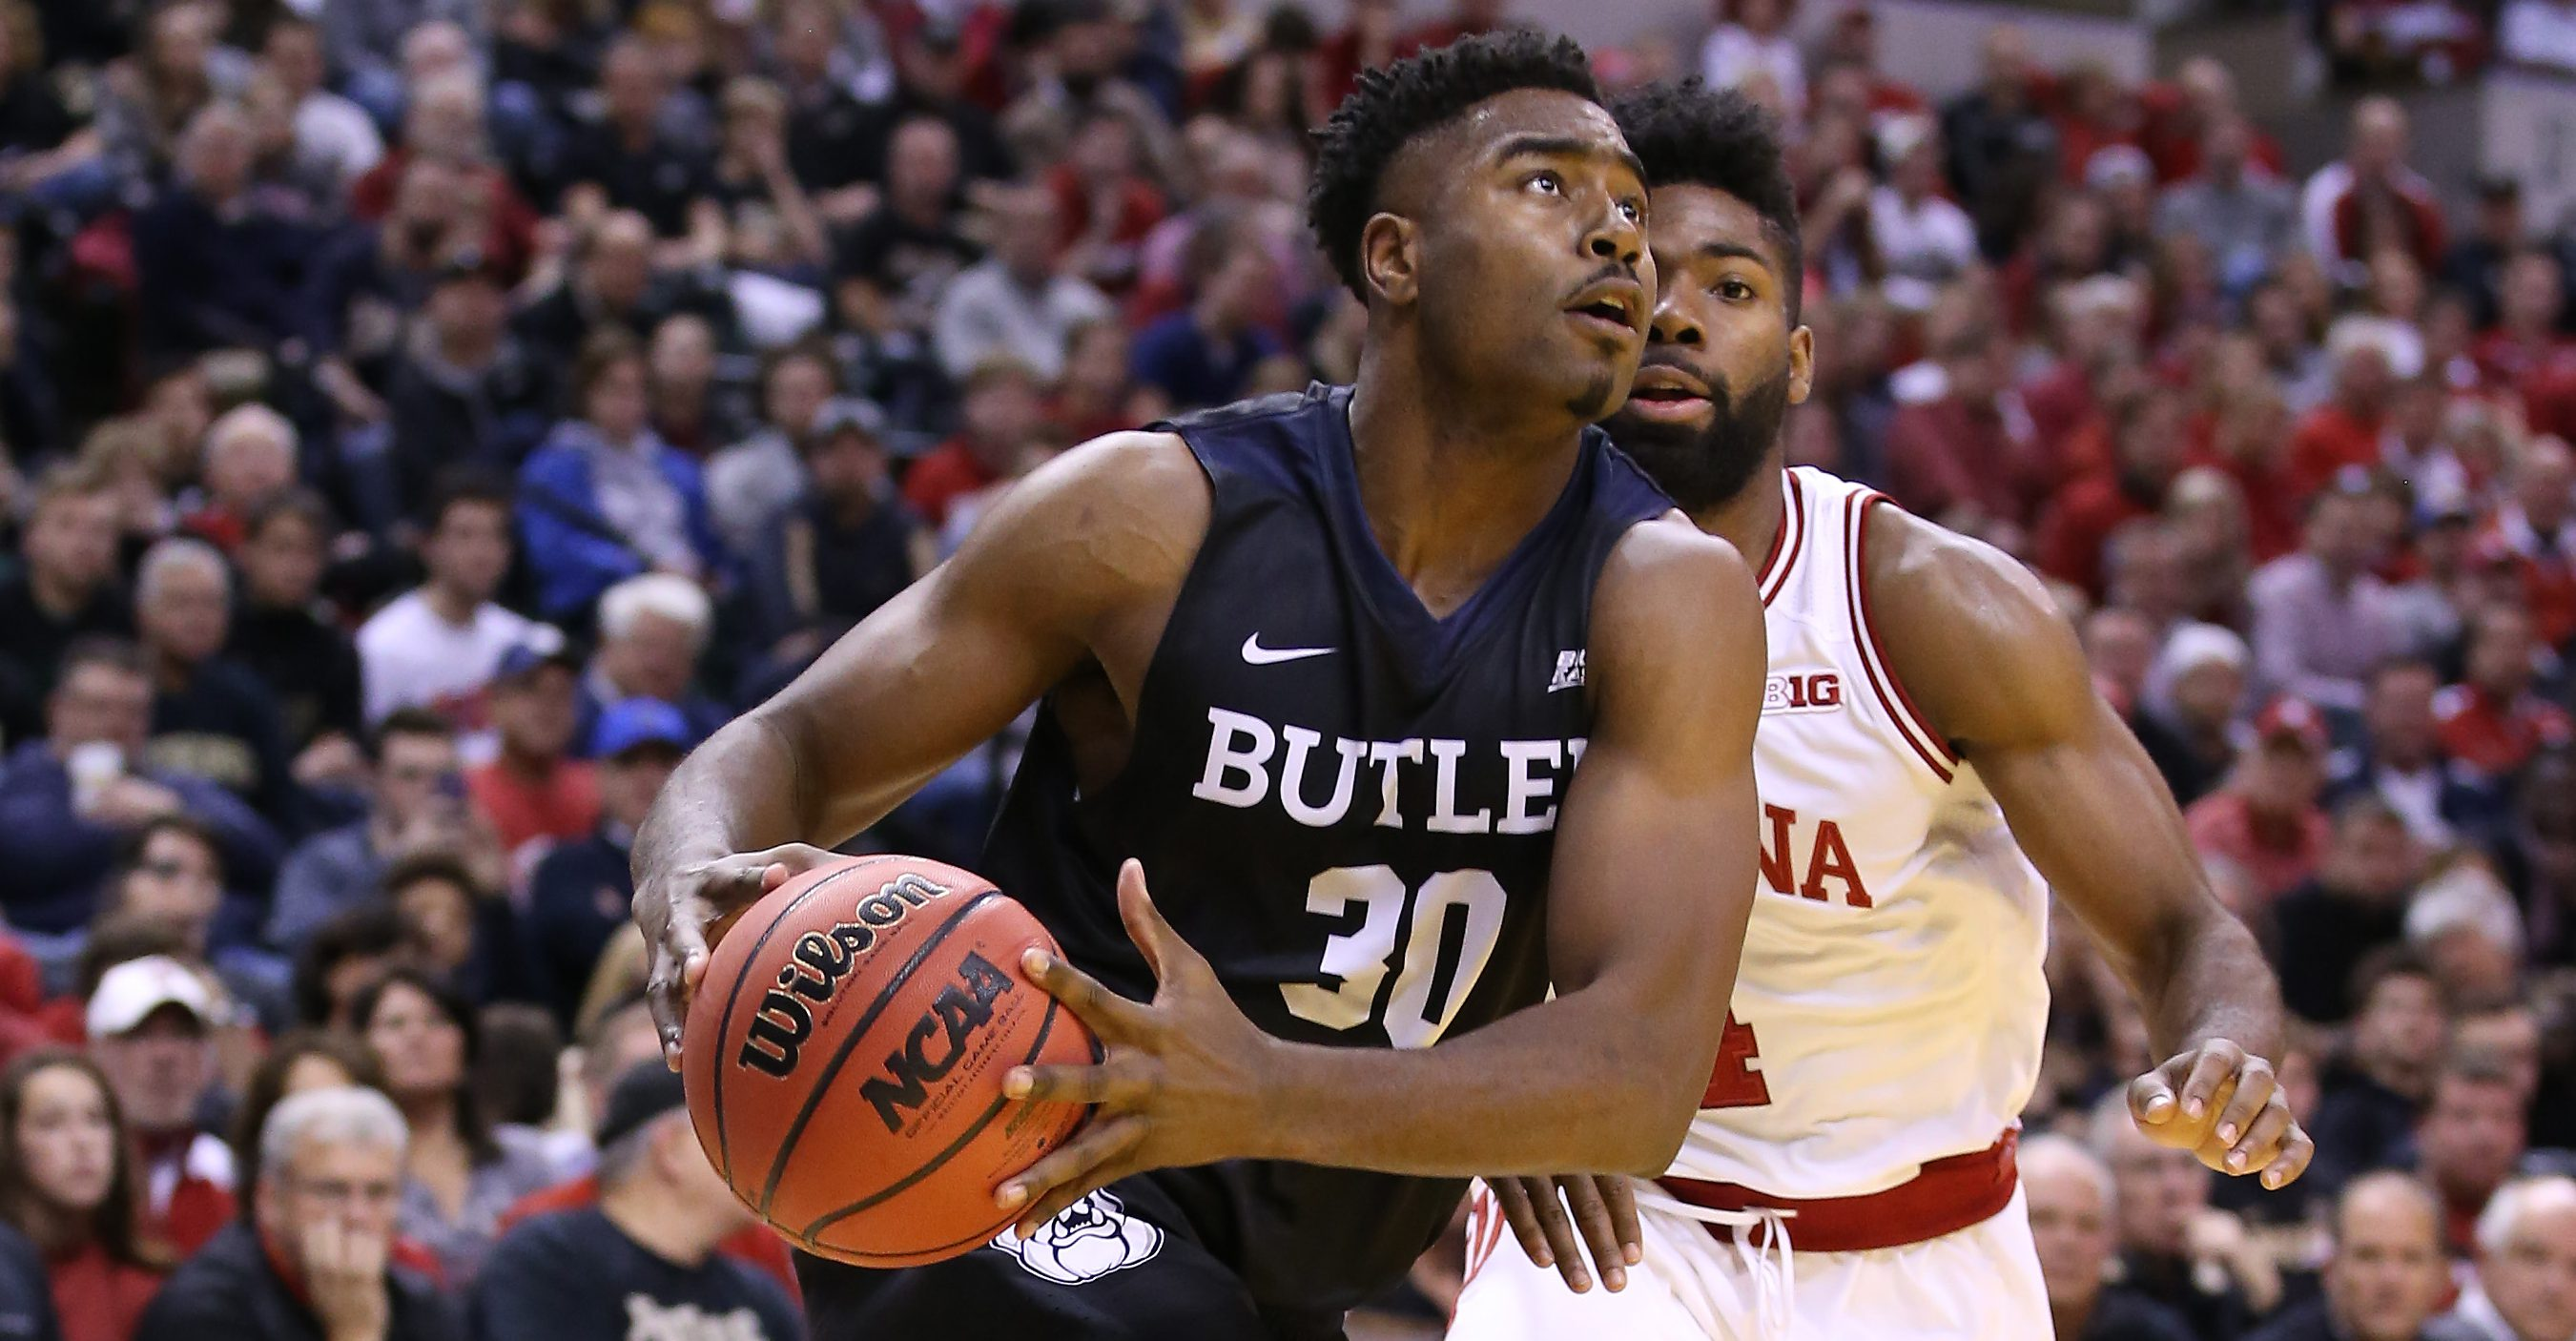 INDIANAPOLIS, IN - DECEMBER 17: Kelan Martin #30 of the Butler Bulldogs dribbles the ball during the 83-78 win over the Indiana Hoosiers during the Crossroads Classic at Bankers Life Fieldhouse on December 17, 2016 in Indianapolis, Indiana. (Photo by Andy Lyons/Getty Images)